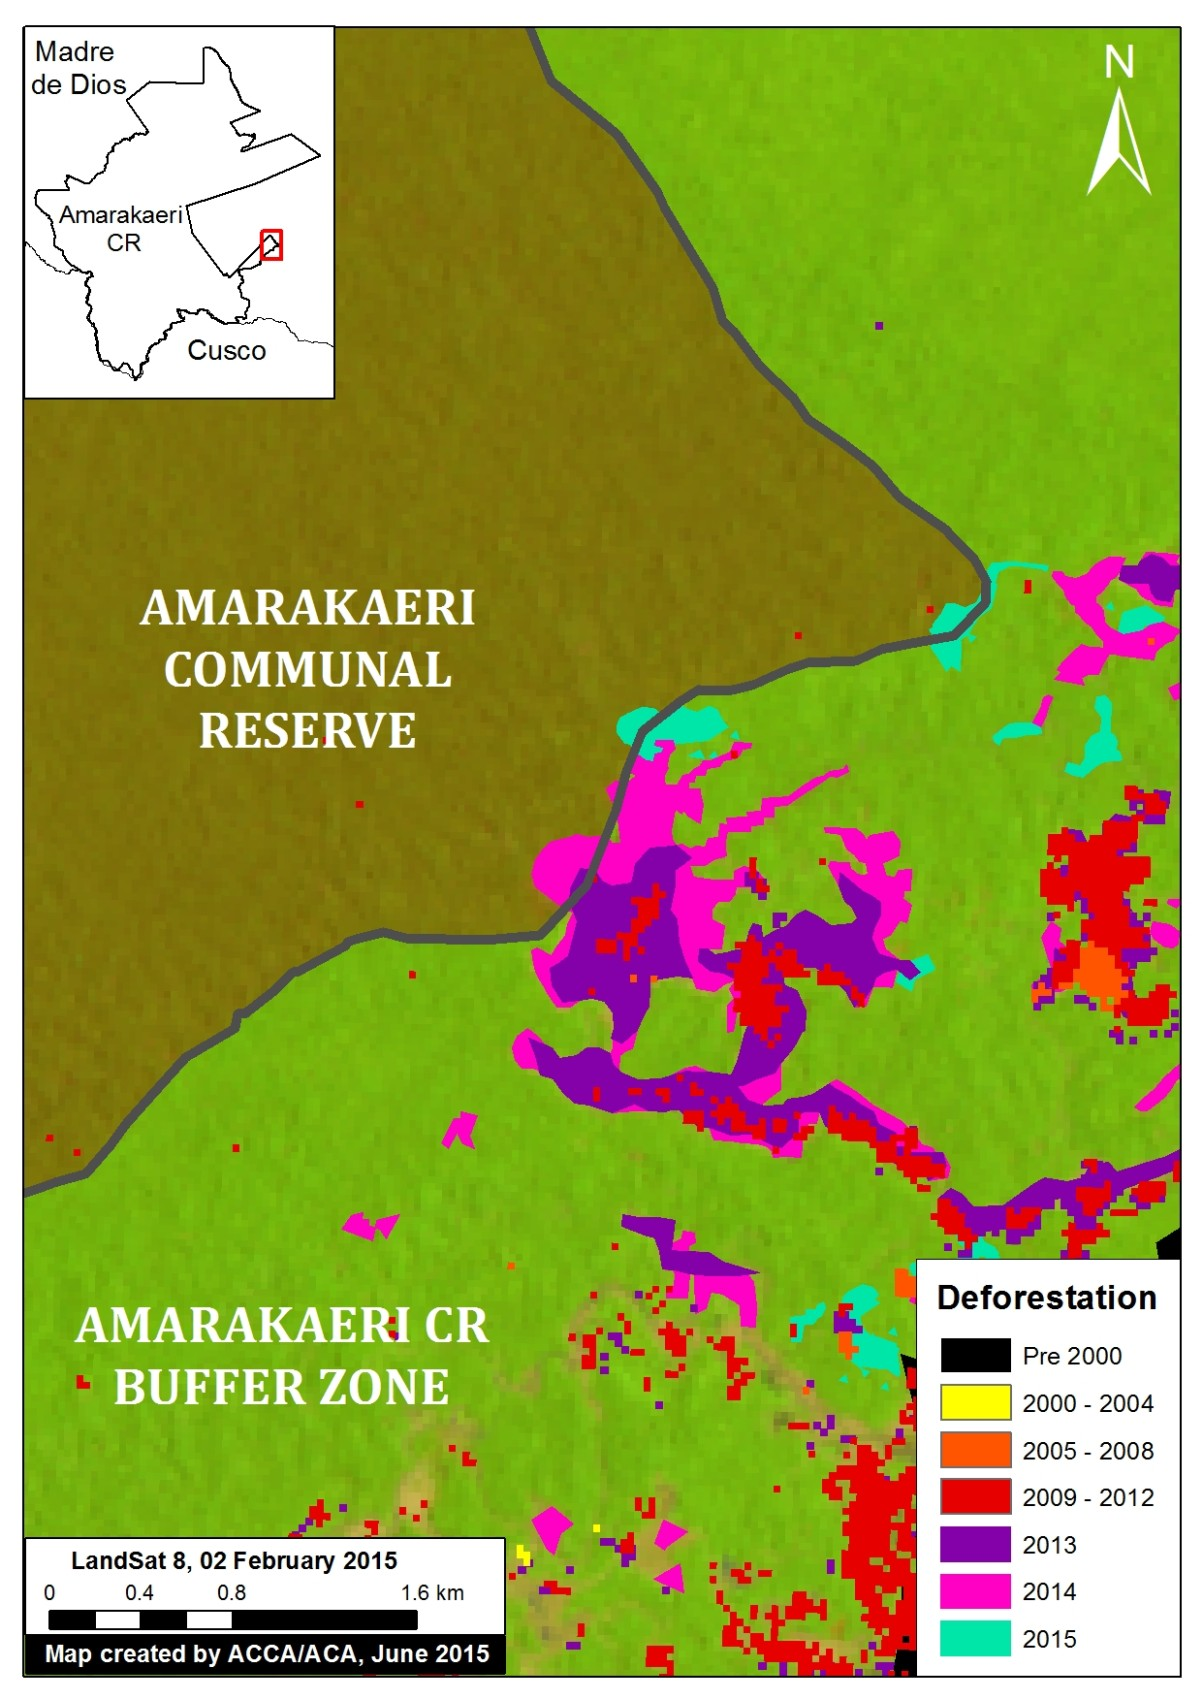 An enhanced view of the deforestation within the southeast section of Amarakaeri Communal Reserve and its surrounding buffer zone. Key data sources: MINAM, SERNANP, ACCA, Hansen/UMD/Google/USGS/NASA, USGS.